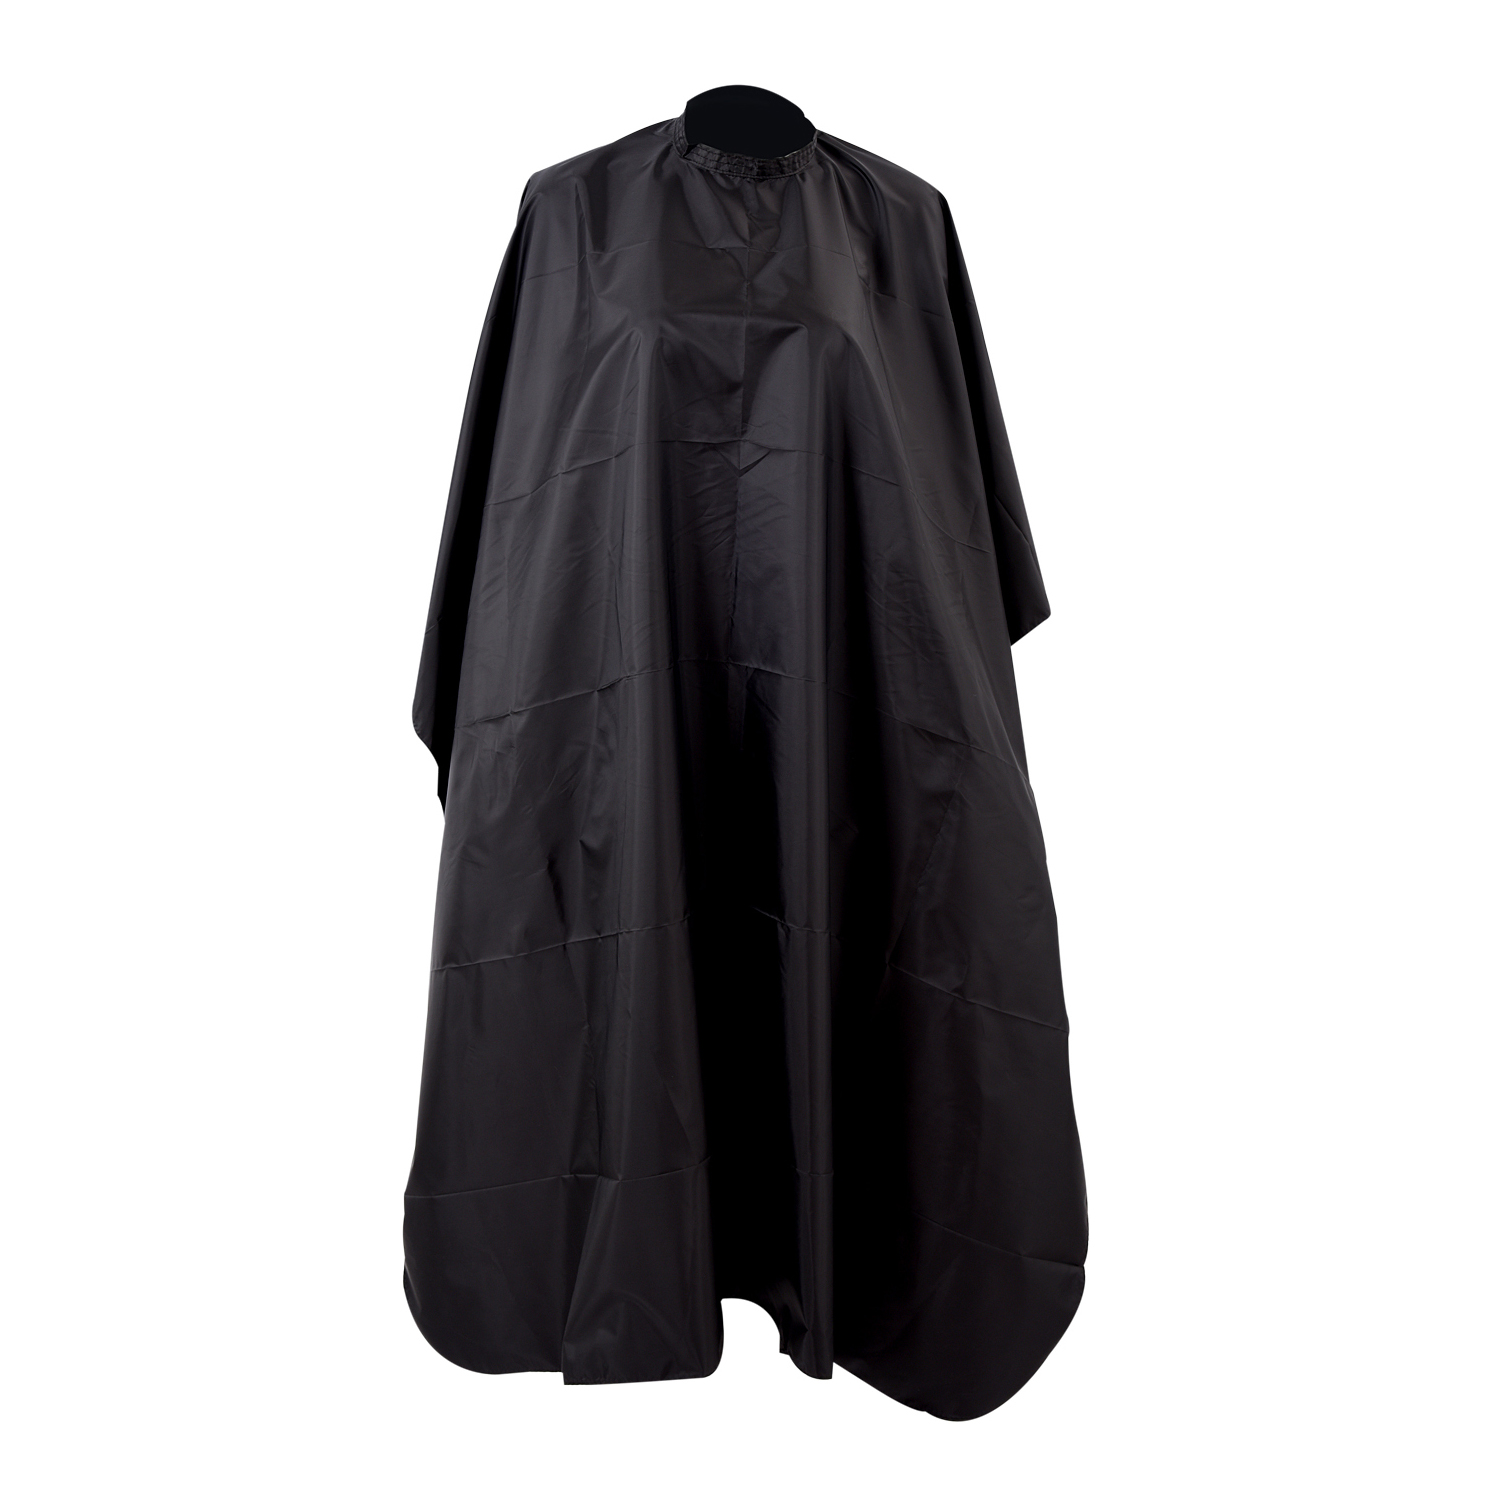 New Black Hair Cut Hairdressing Hairdressers Barbers Cape Gown